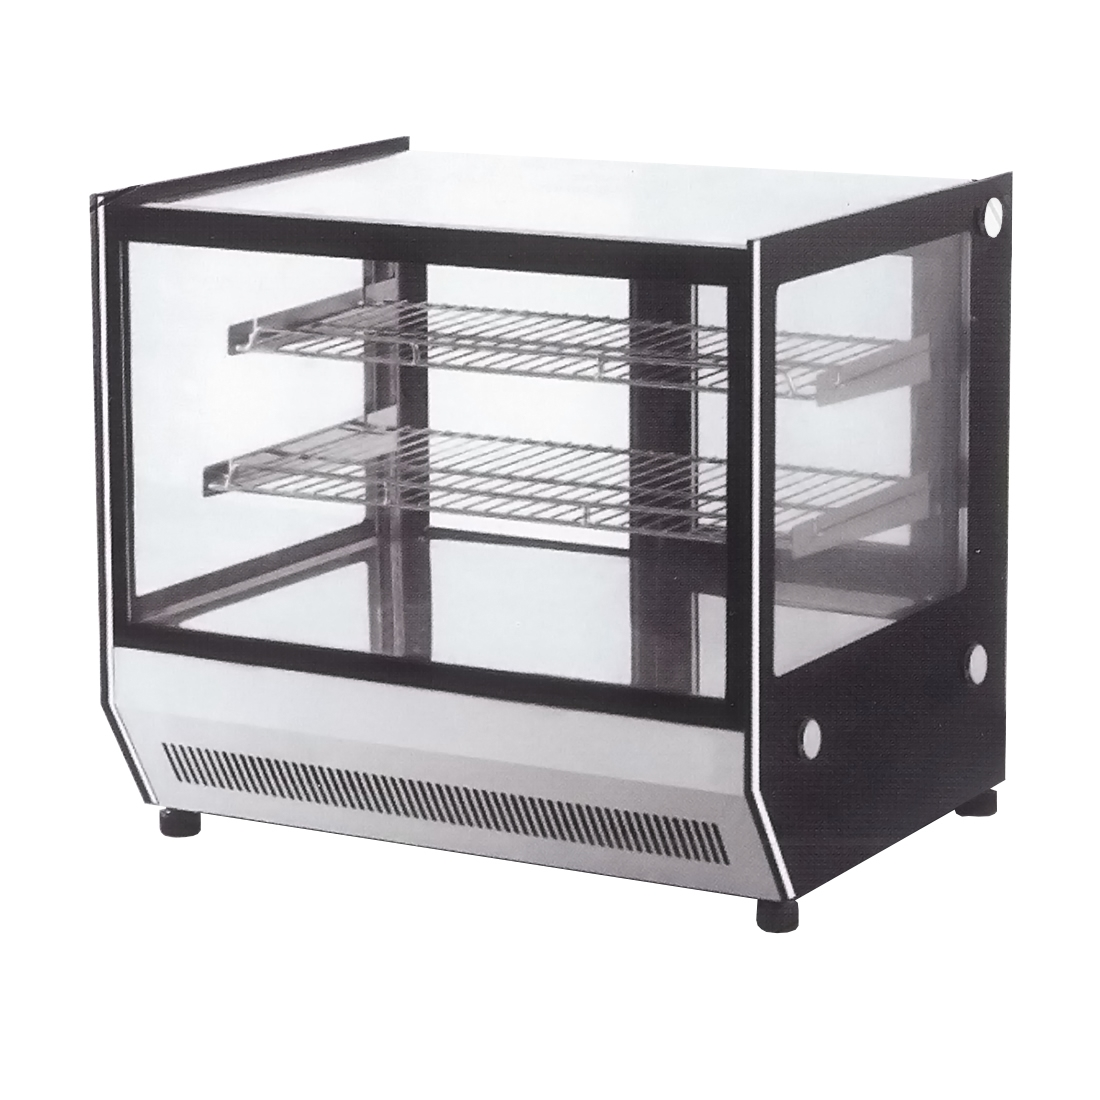 Counter top square glass cold food display - GN-900RT